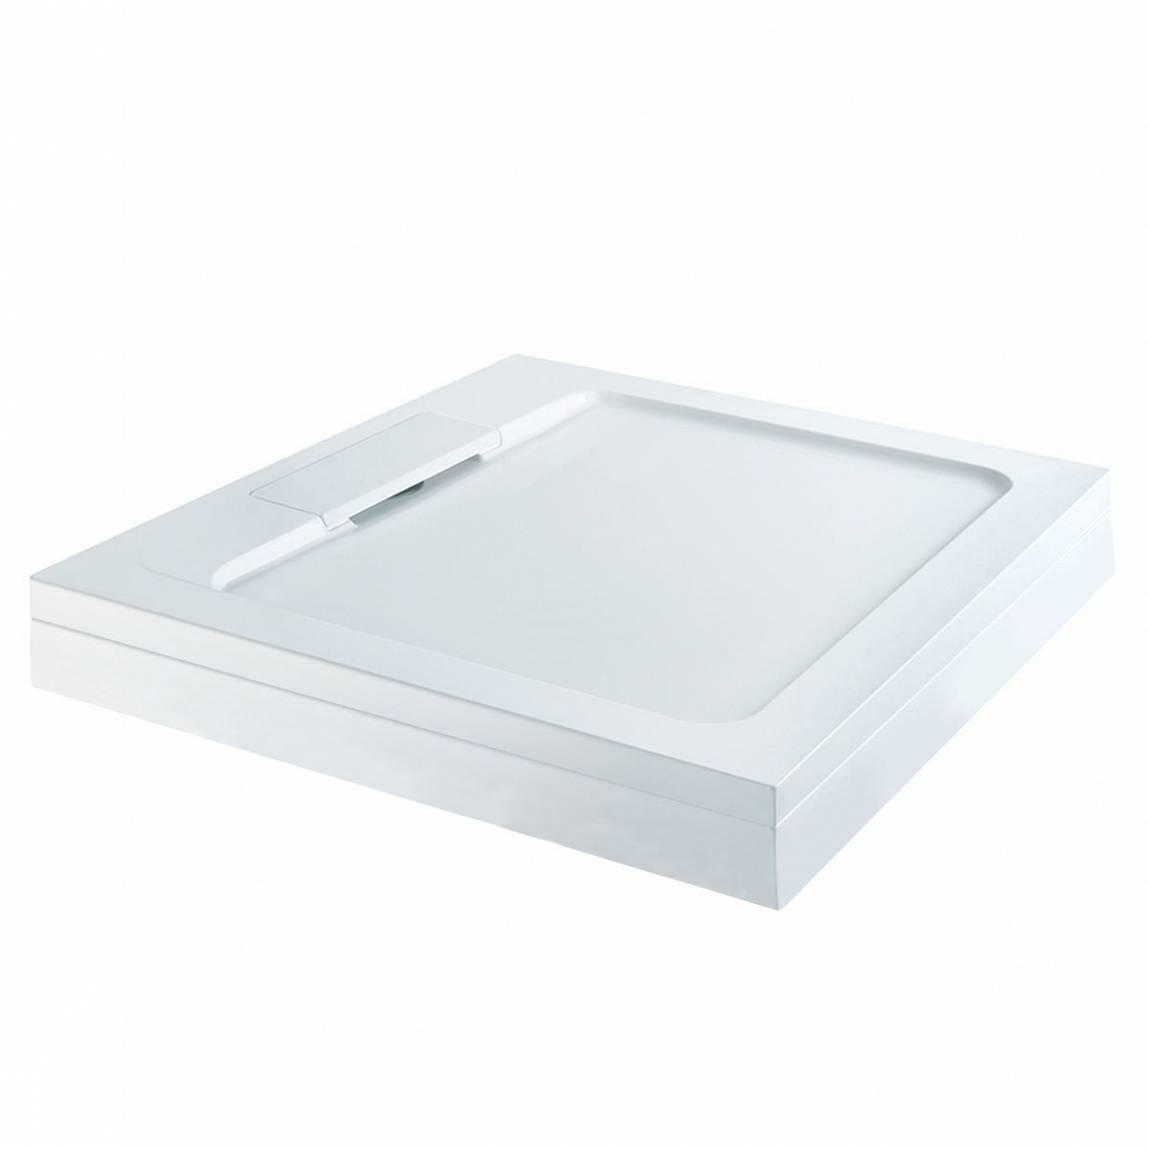 Image of Designer Square Stone Shower Tray & Riser Kit 800 x 800